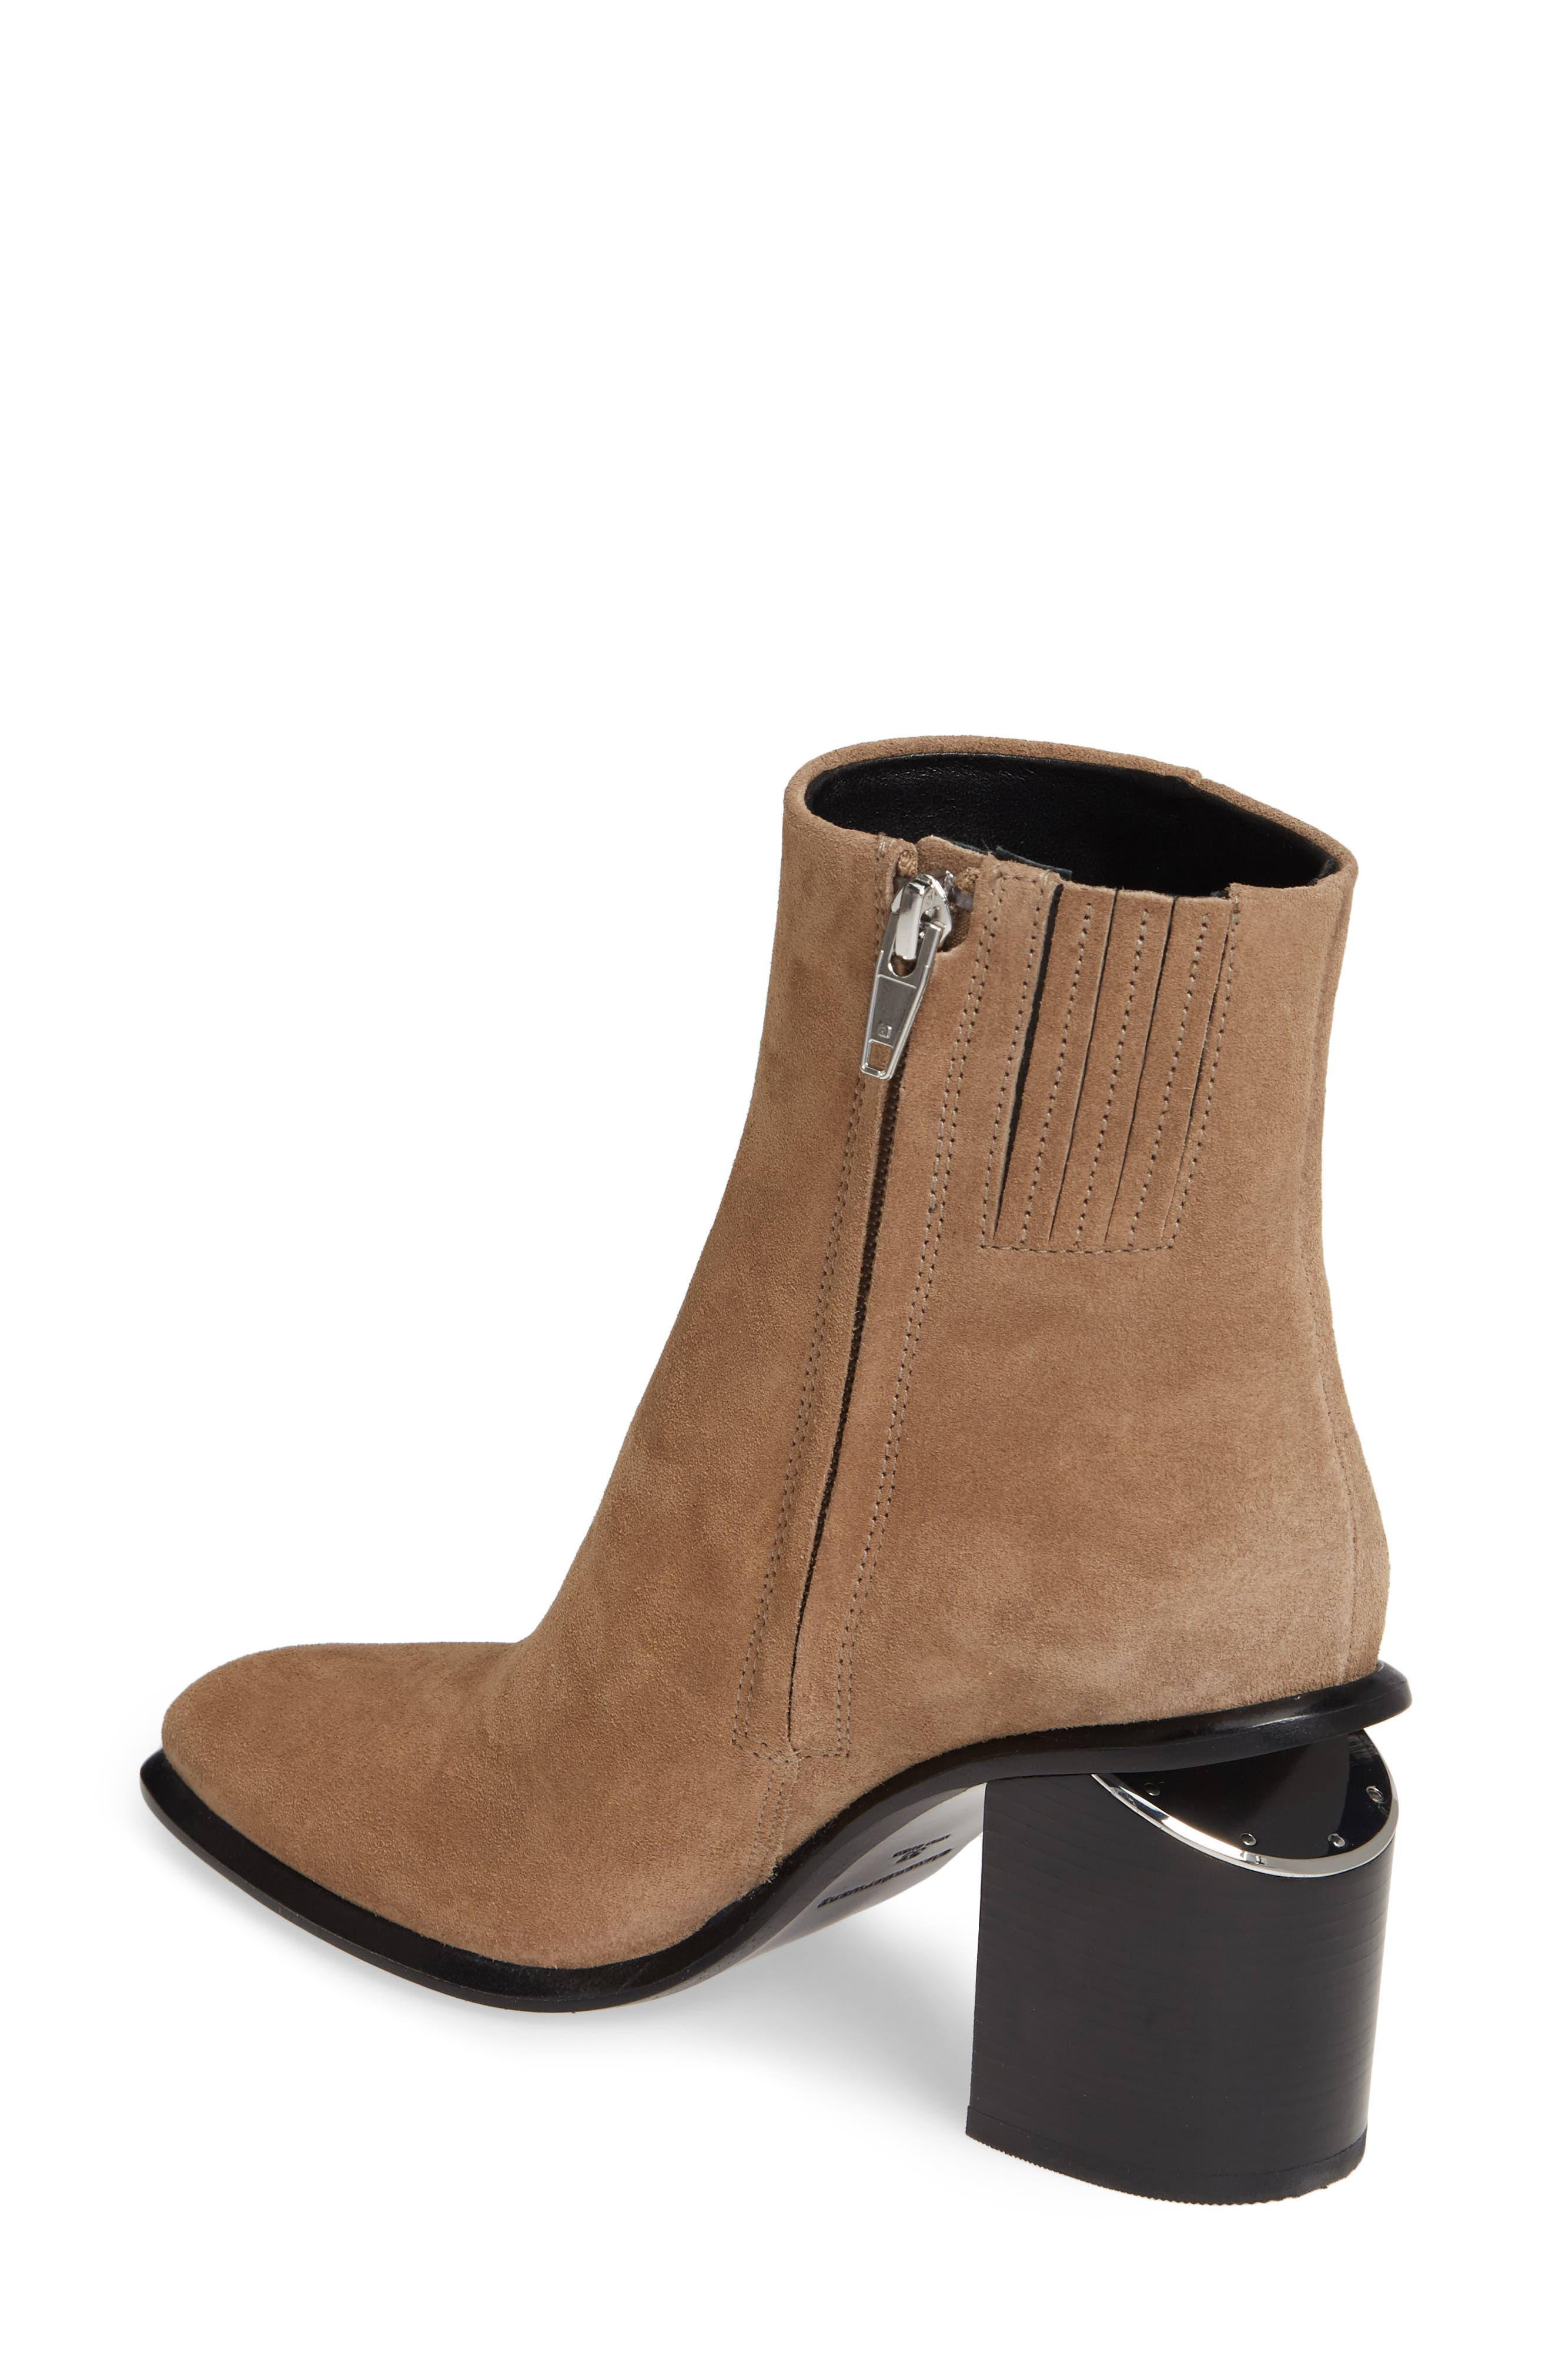 ALEXANDER WANG, Anna Mid Bootie, Alternate thumbnail 2, color, SAND SUEDE